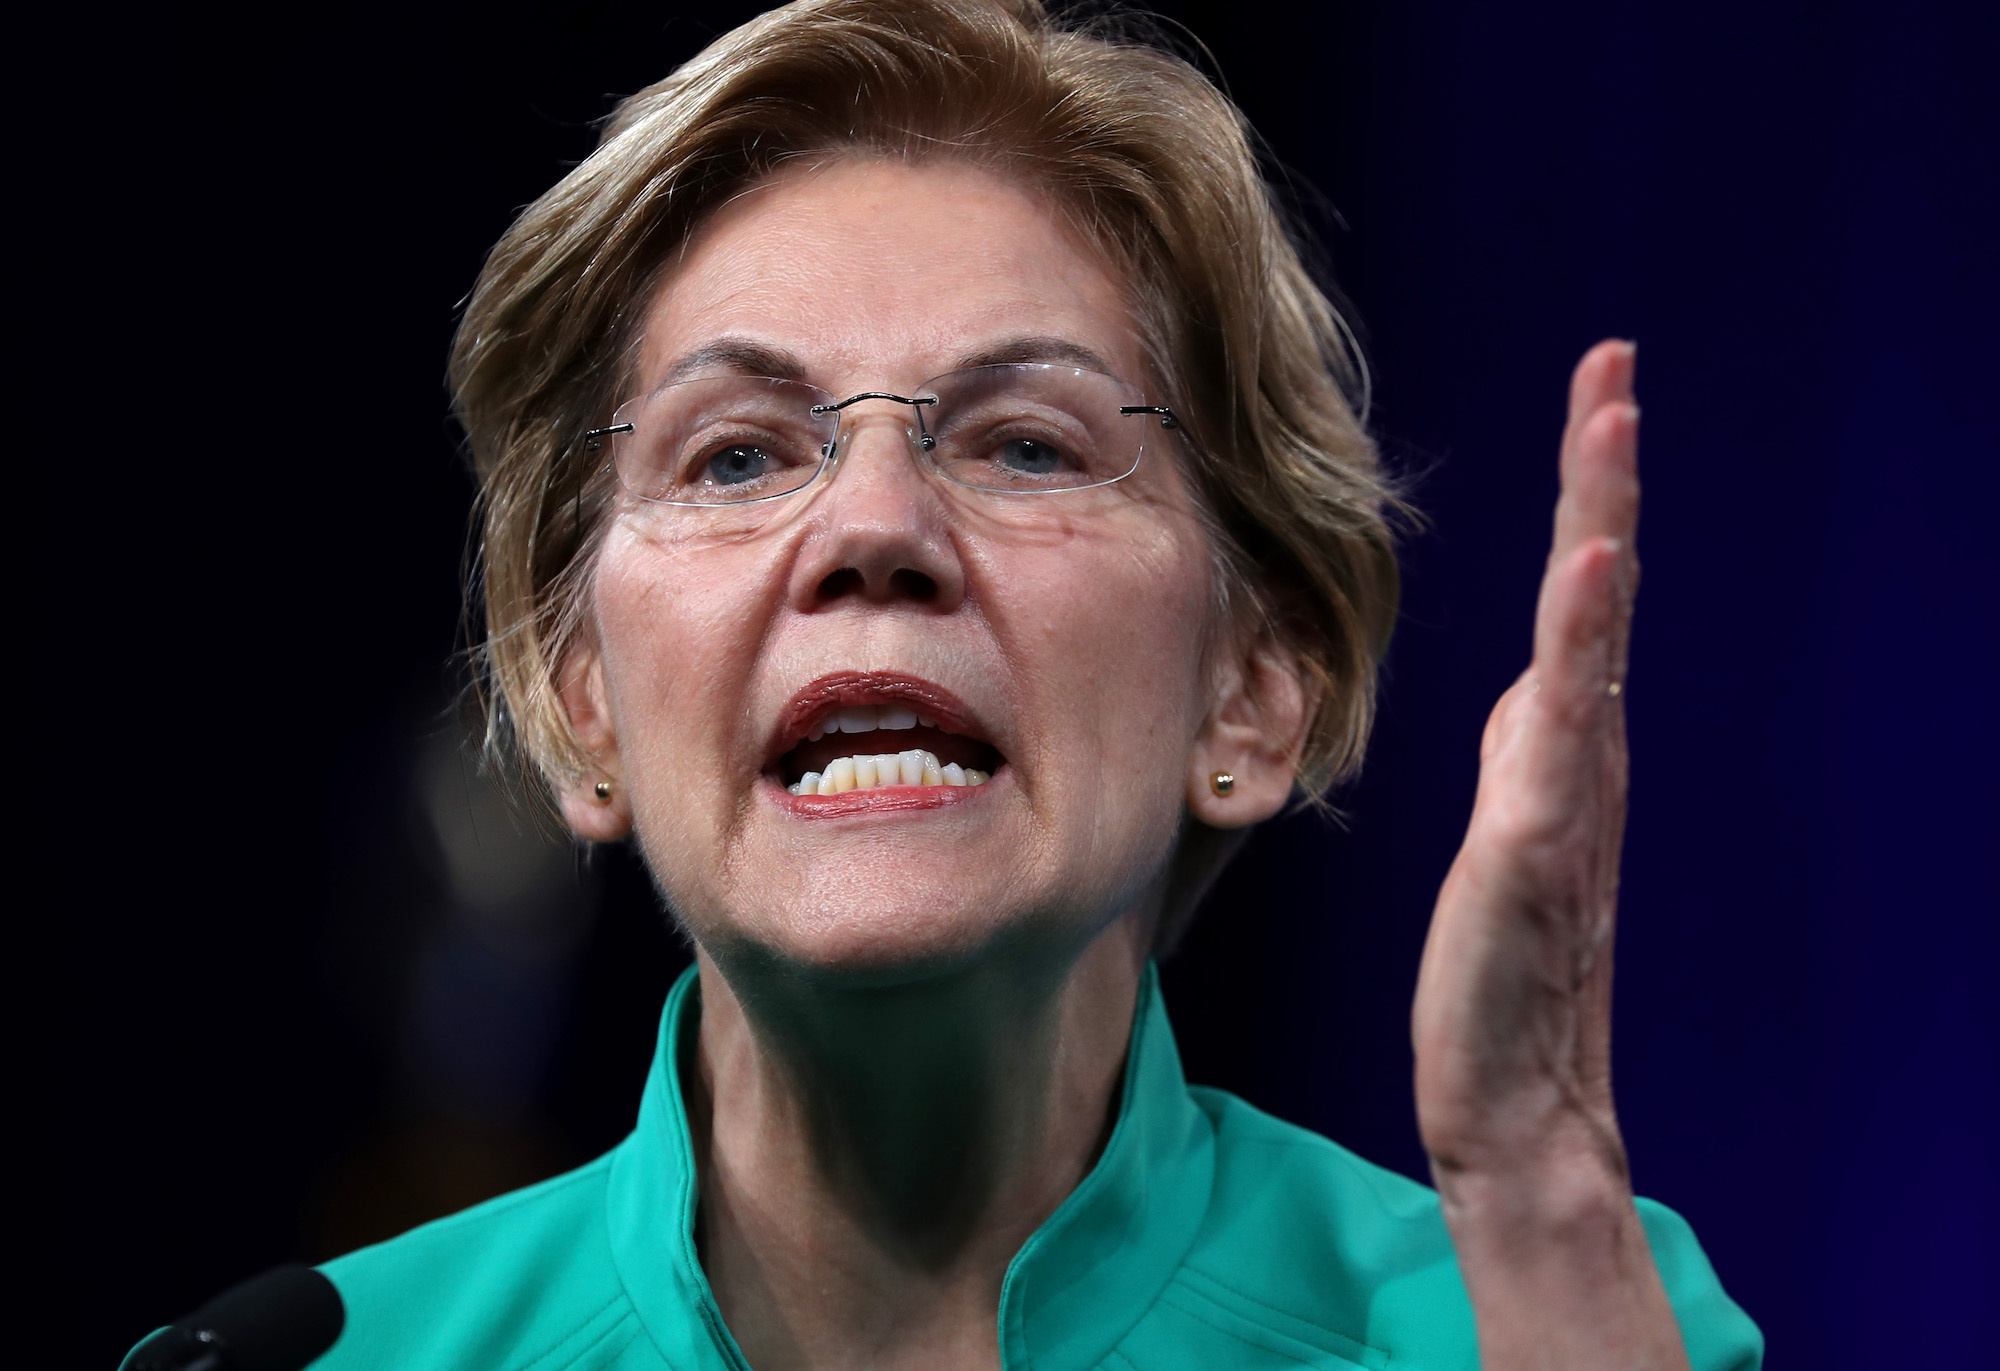 Liz Warren said she would disavow all super PAC money — but she's singing a different tune now